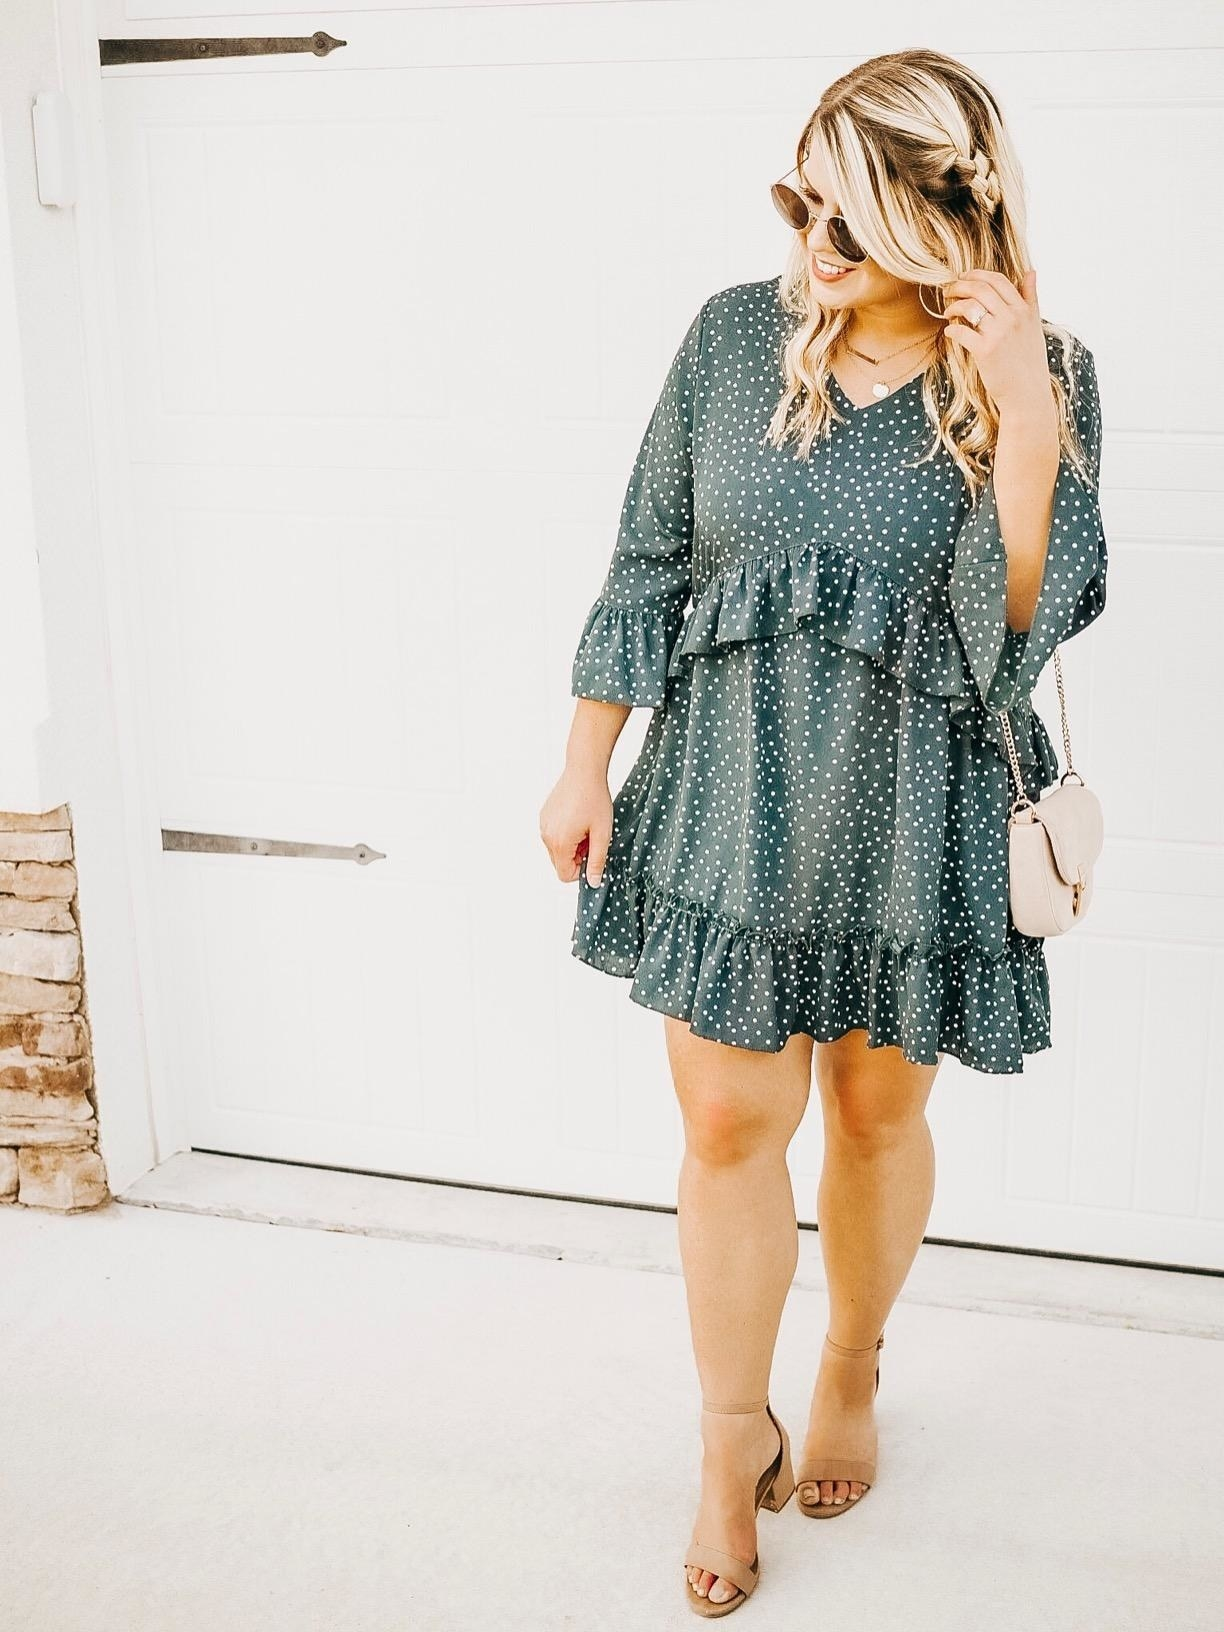 Reviewer in the green mini dress with ruffles around the middle, hem, and three-quarter sleeves